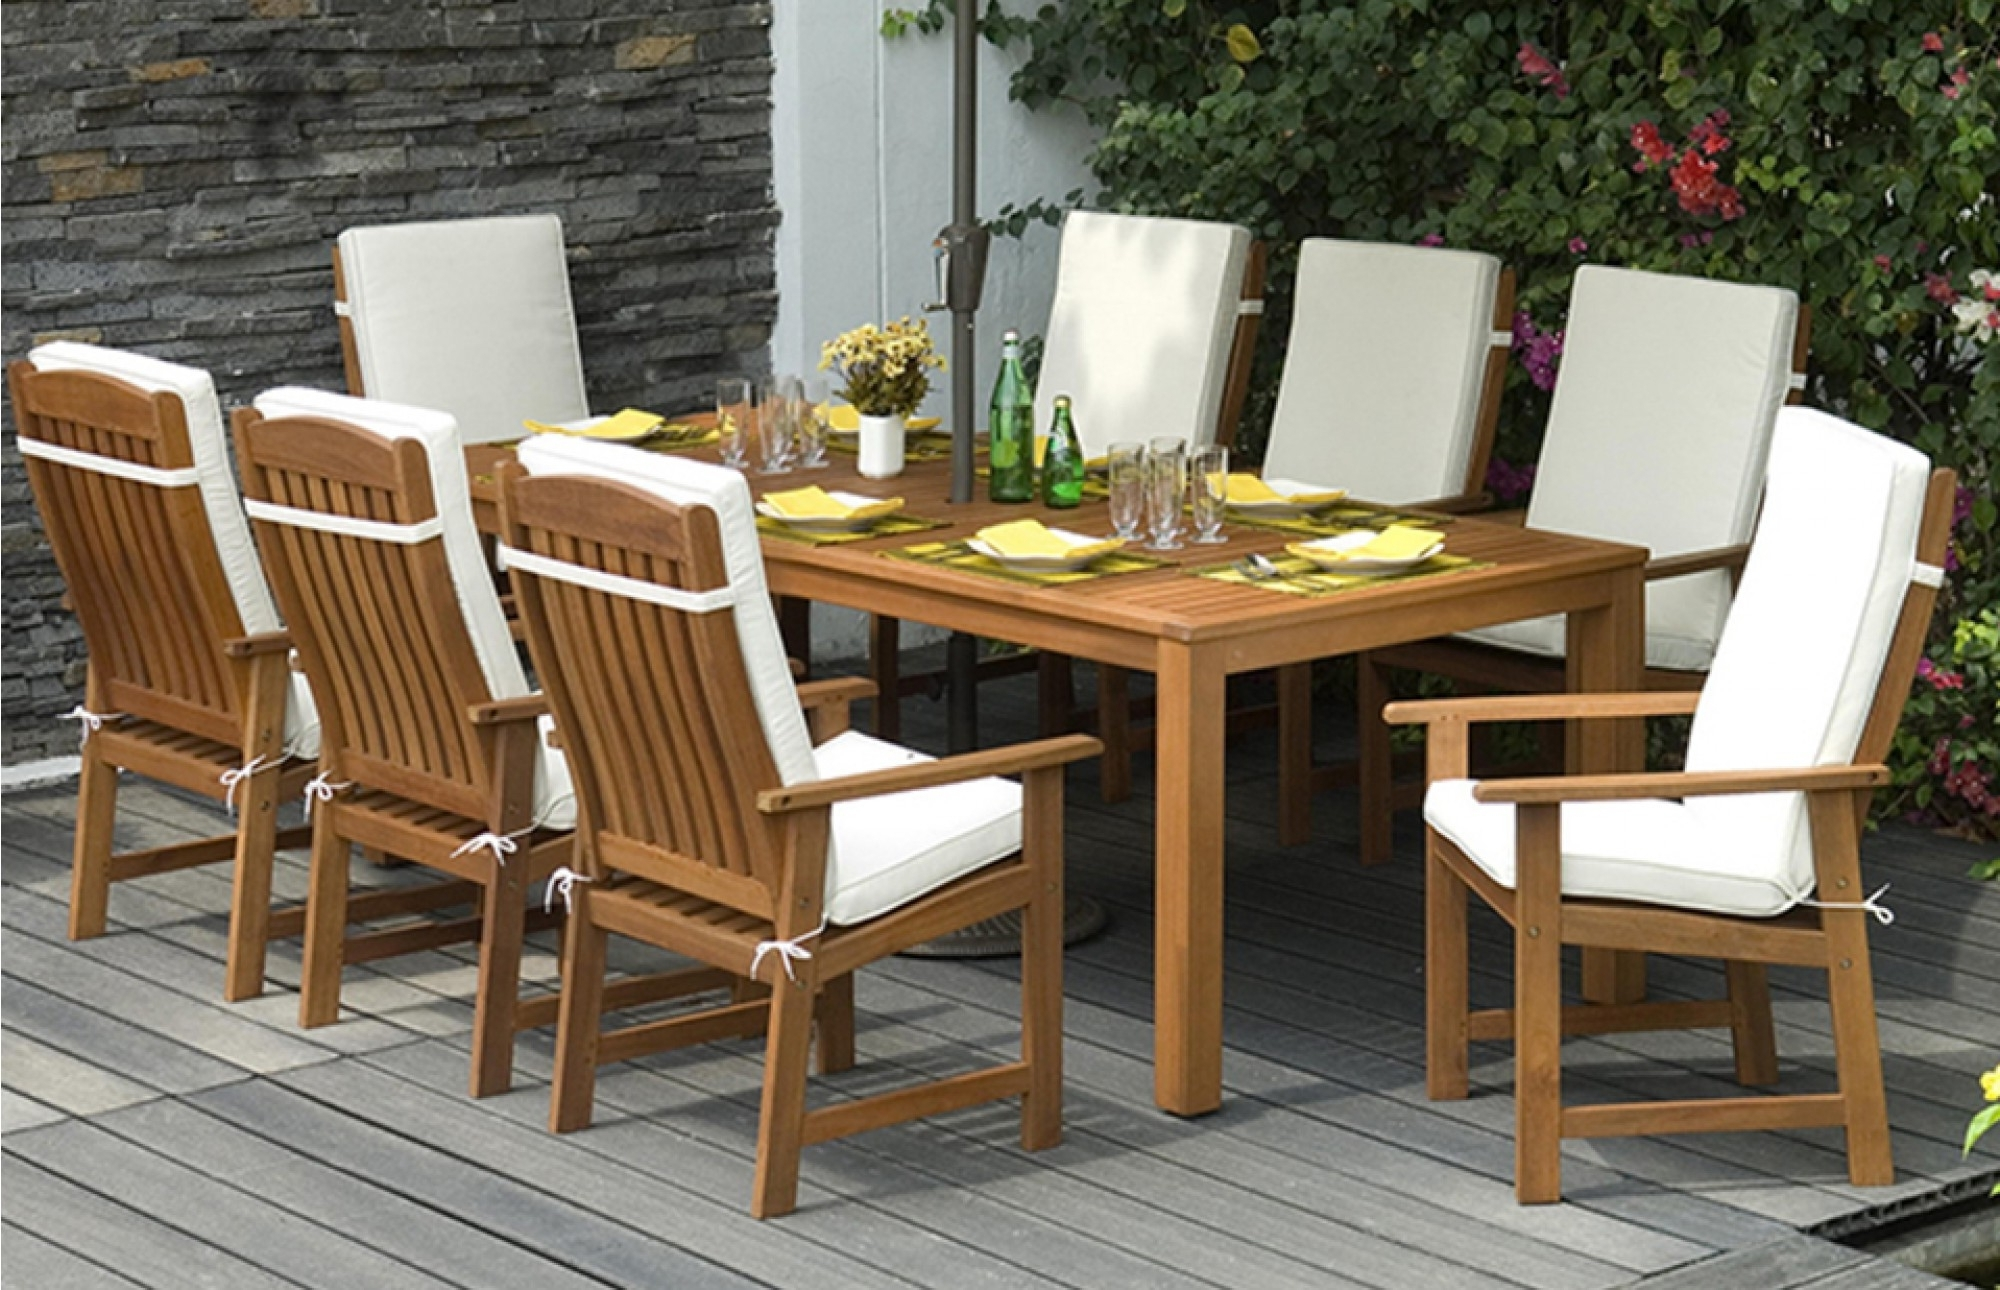 8 Seater Dining Table Sets Throughout Most Popular Dining Table Sets 8 Seater • Table Setting Ideas (Gallery 25 of 25)